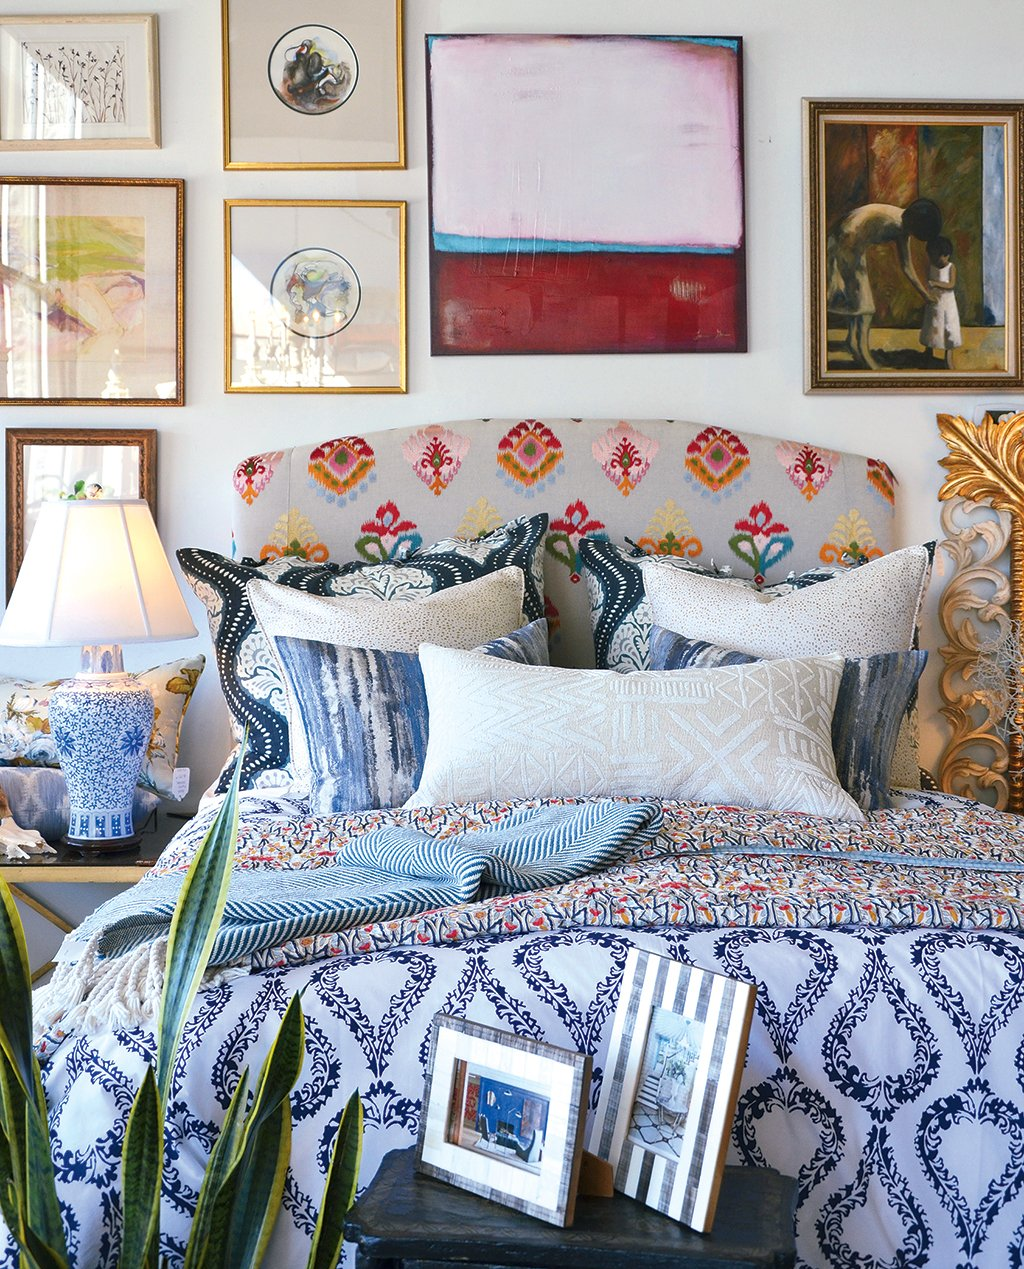 On Trend: Valerianne in Herndon specializes in luxury bedding and textiles. Photograph by Elizabeth Stevens